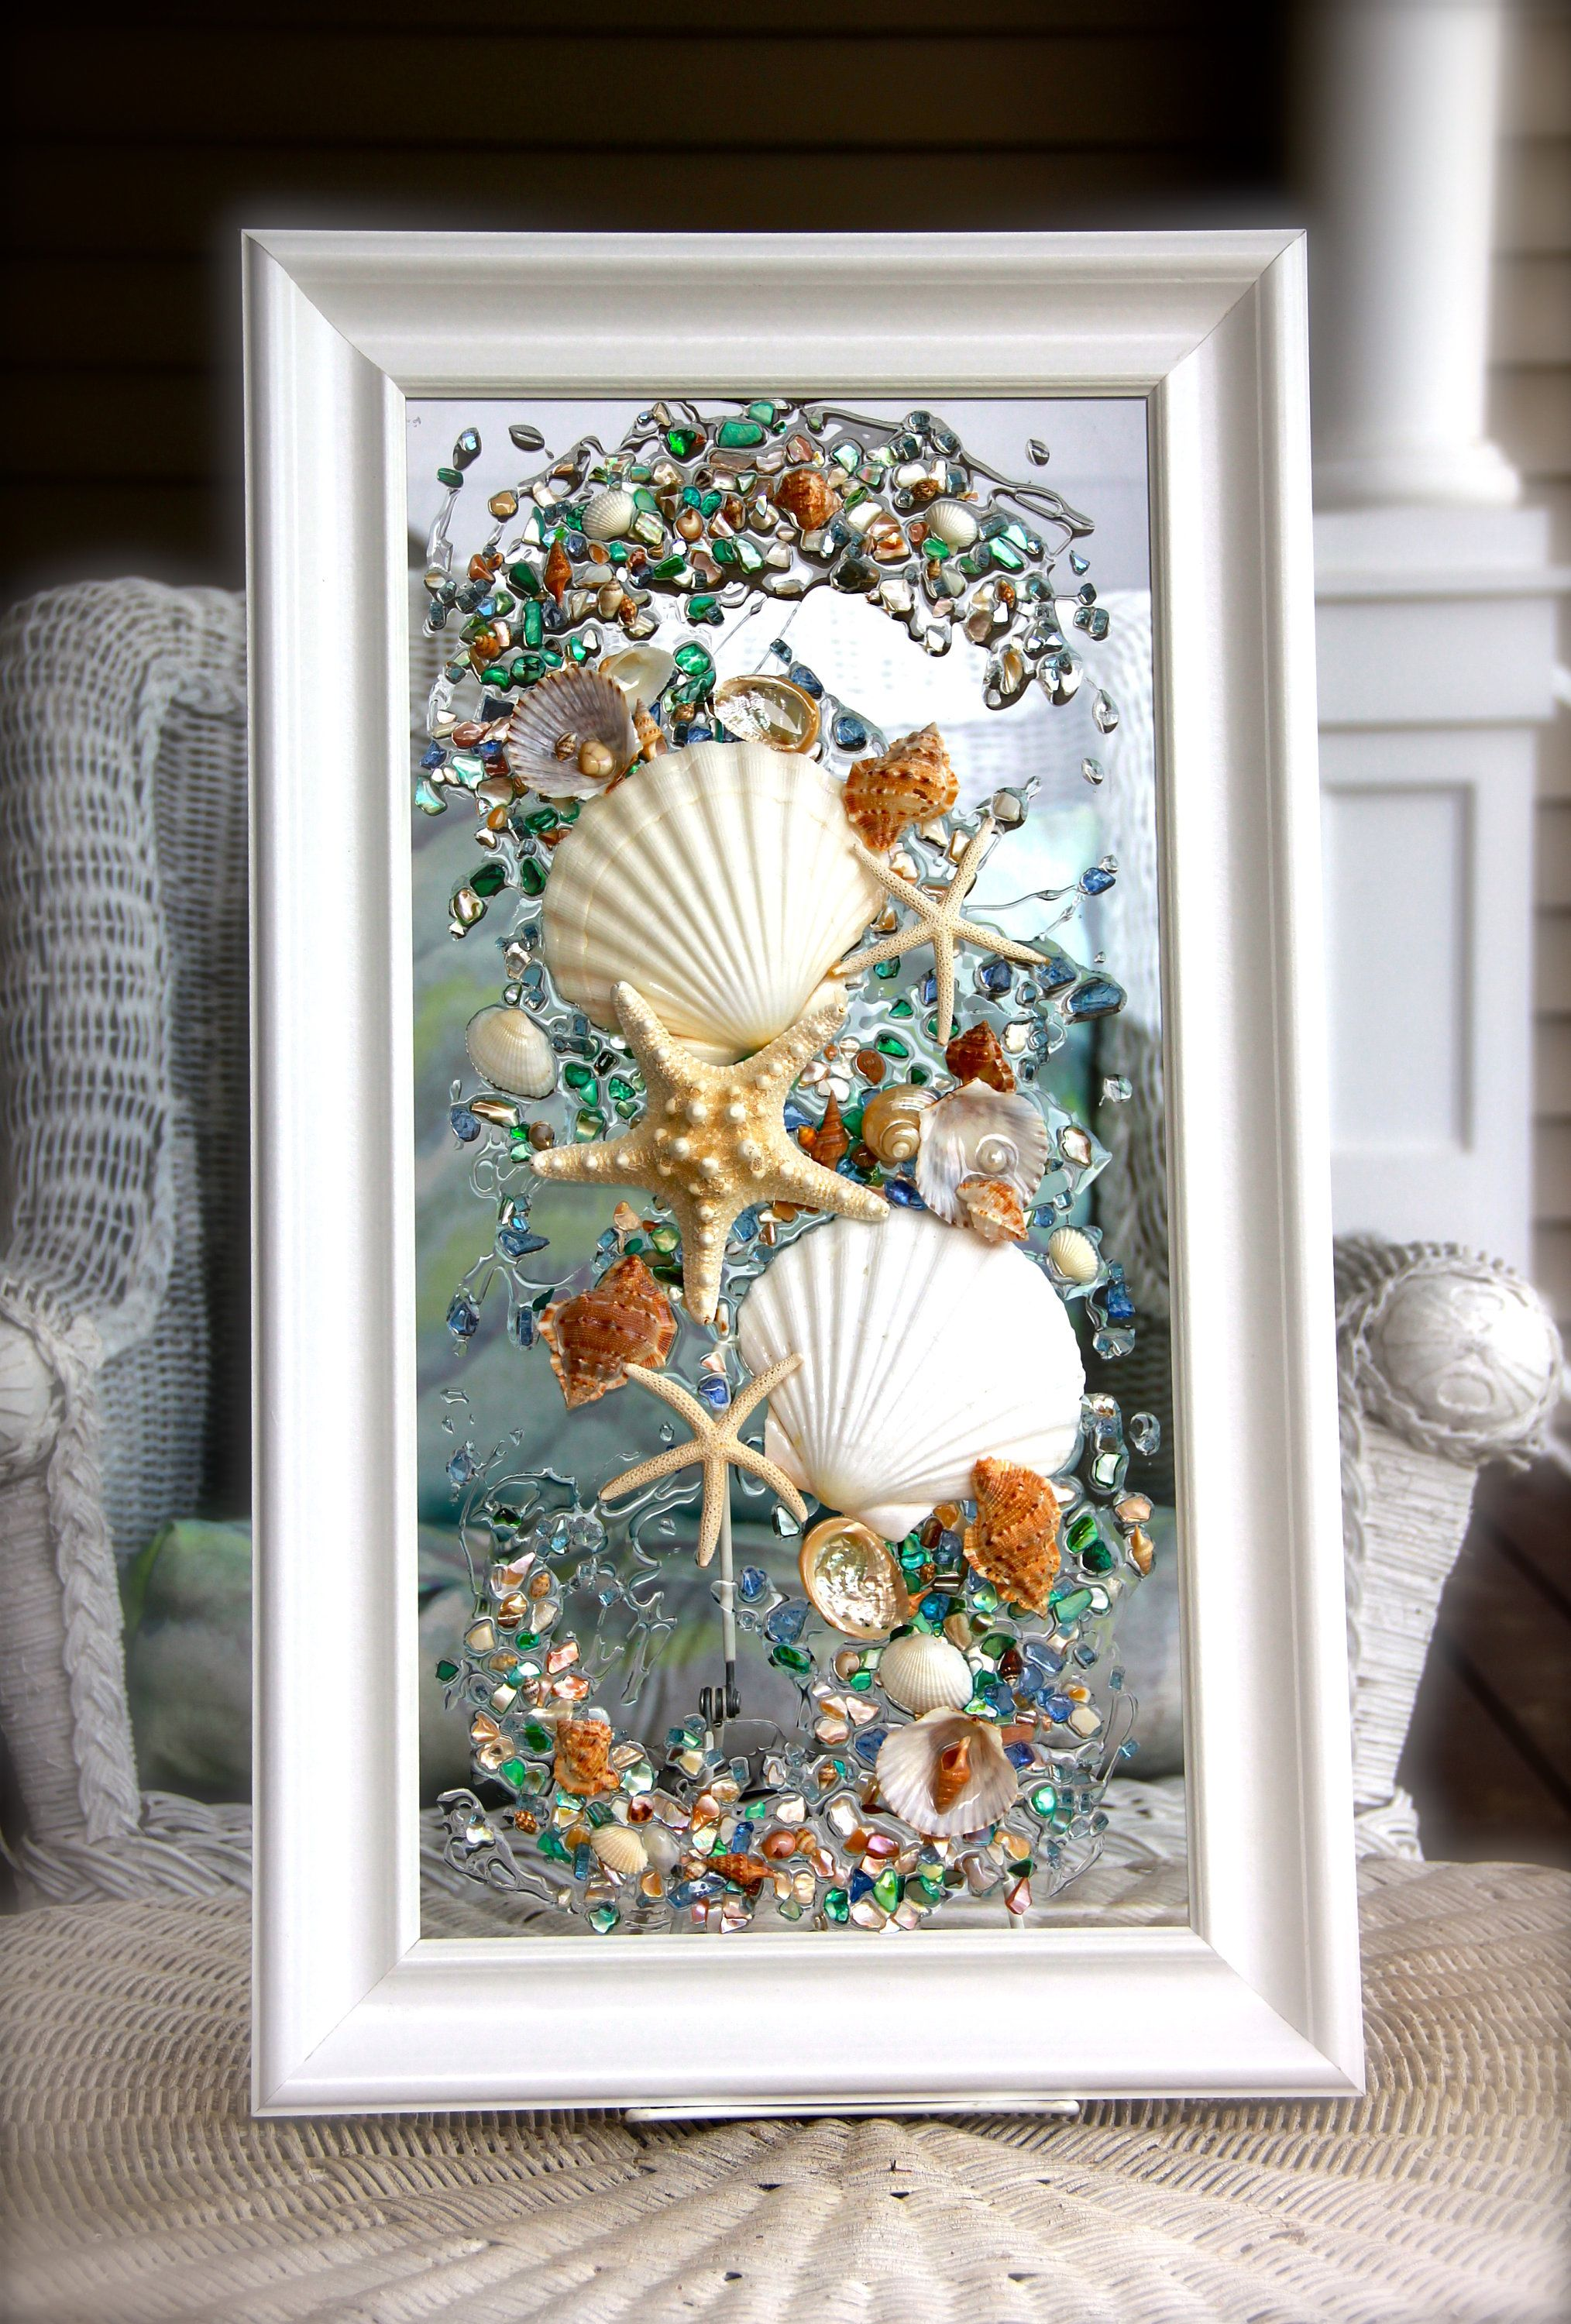 Wall Hanging With Shells From The Beach Diy Crafts Shelling At Sundial Beach Resort And Spa On Sanibel Island I Seashell Crafts Sea Shell Decor Shell Crafts